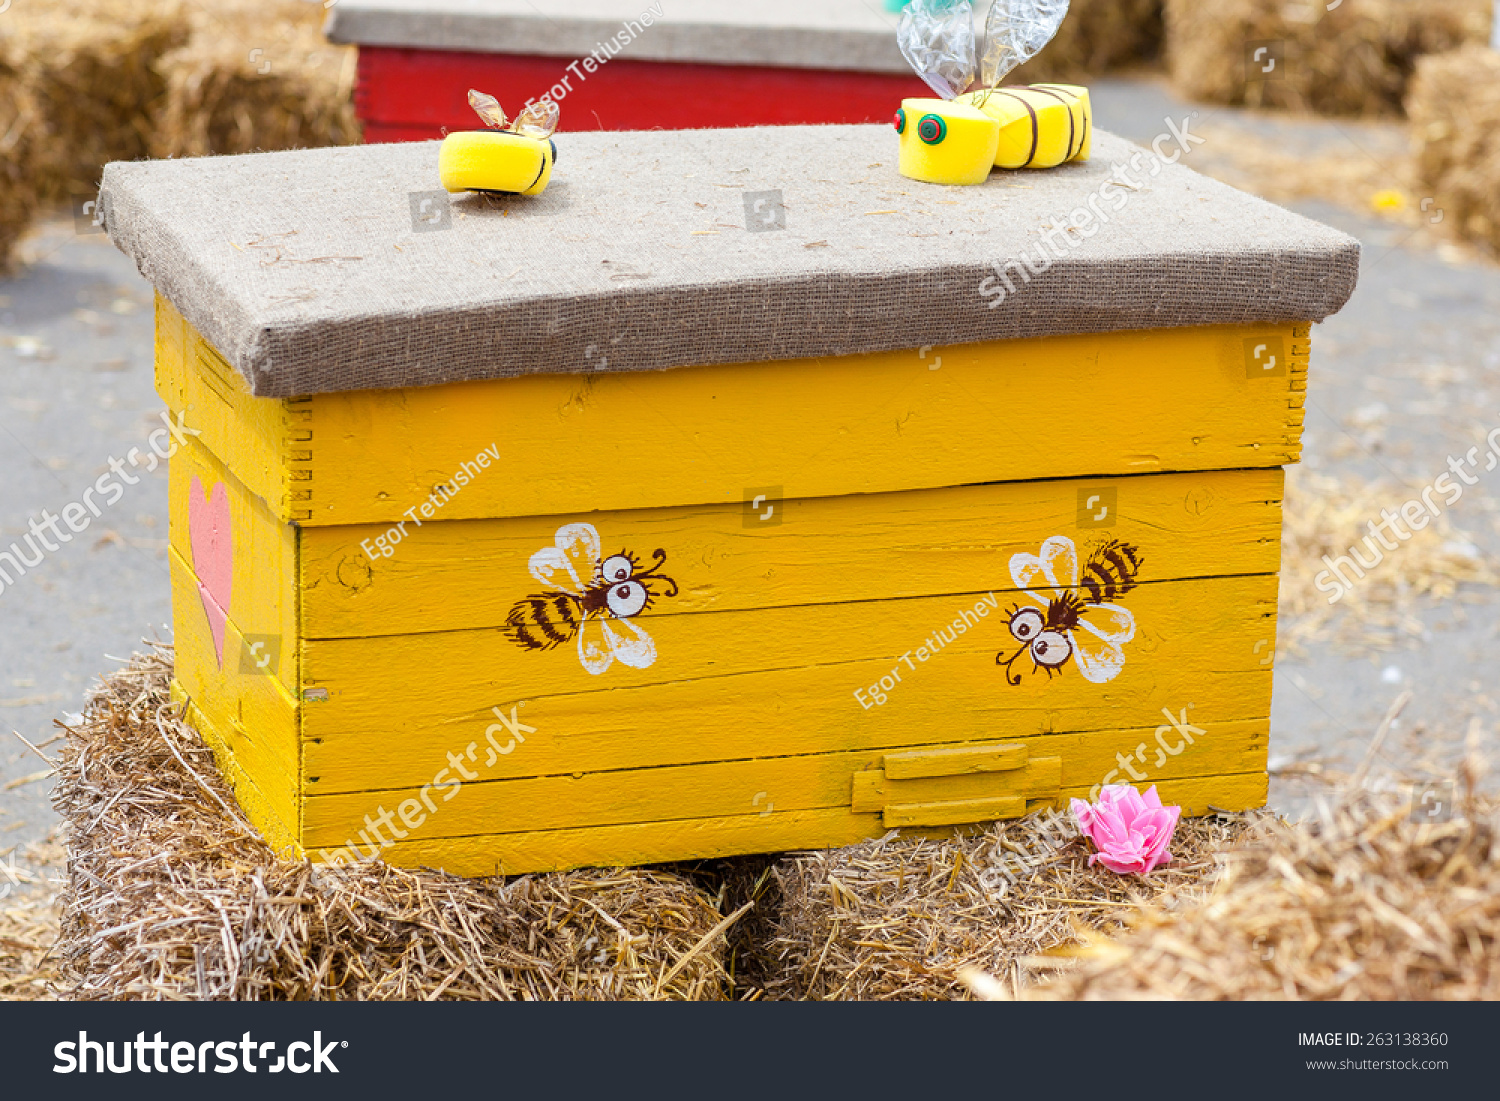 Decorative Painted Beehive With Bees Artificial Standing On A Haystack Original Design Ethno